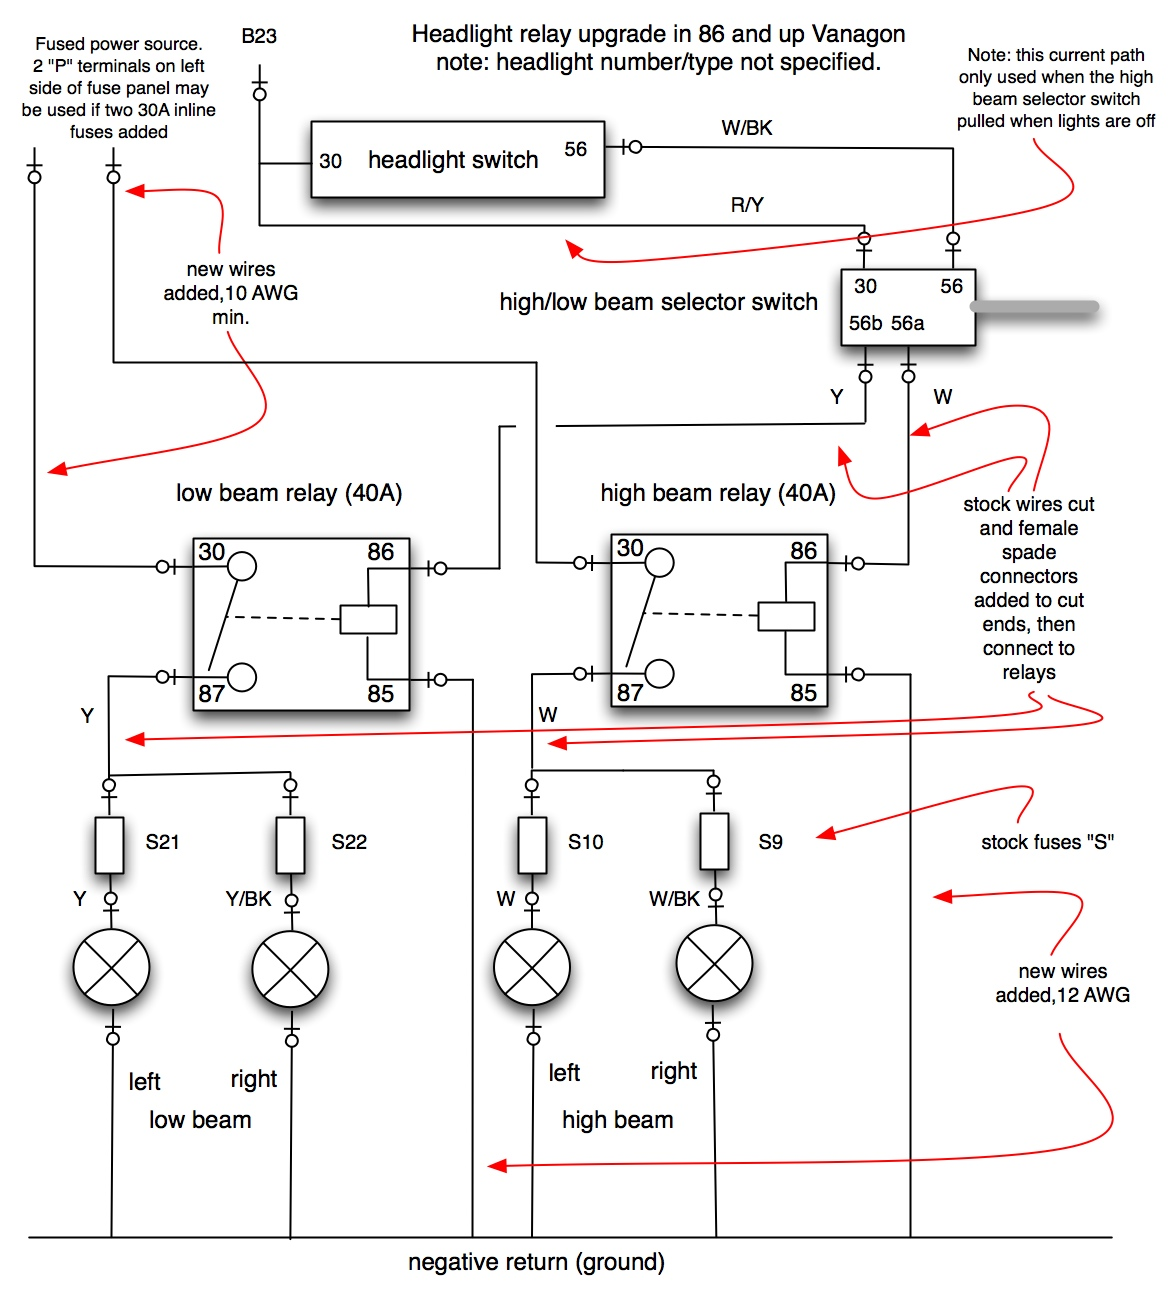 headlight wiring upgrade diagram vanagon – headlight relay upgrade | shooftie